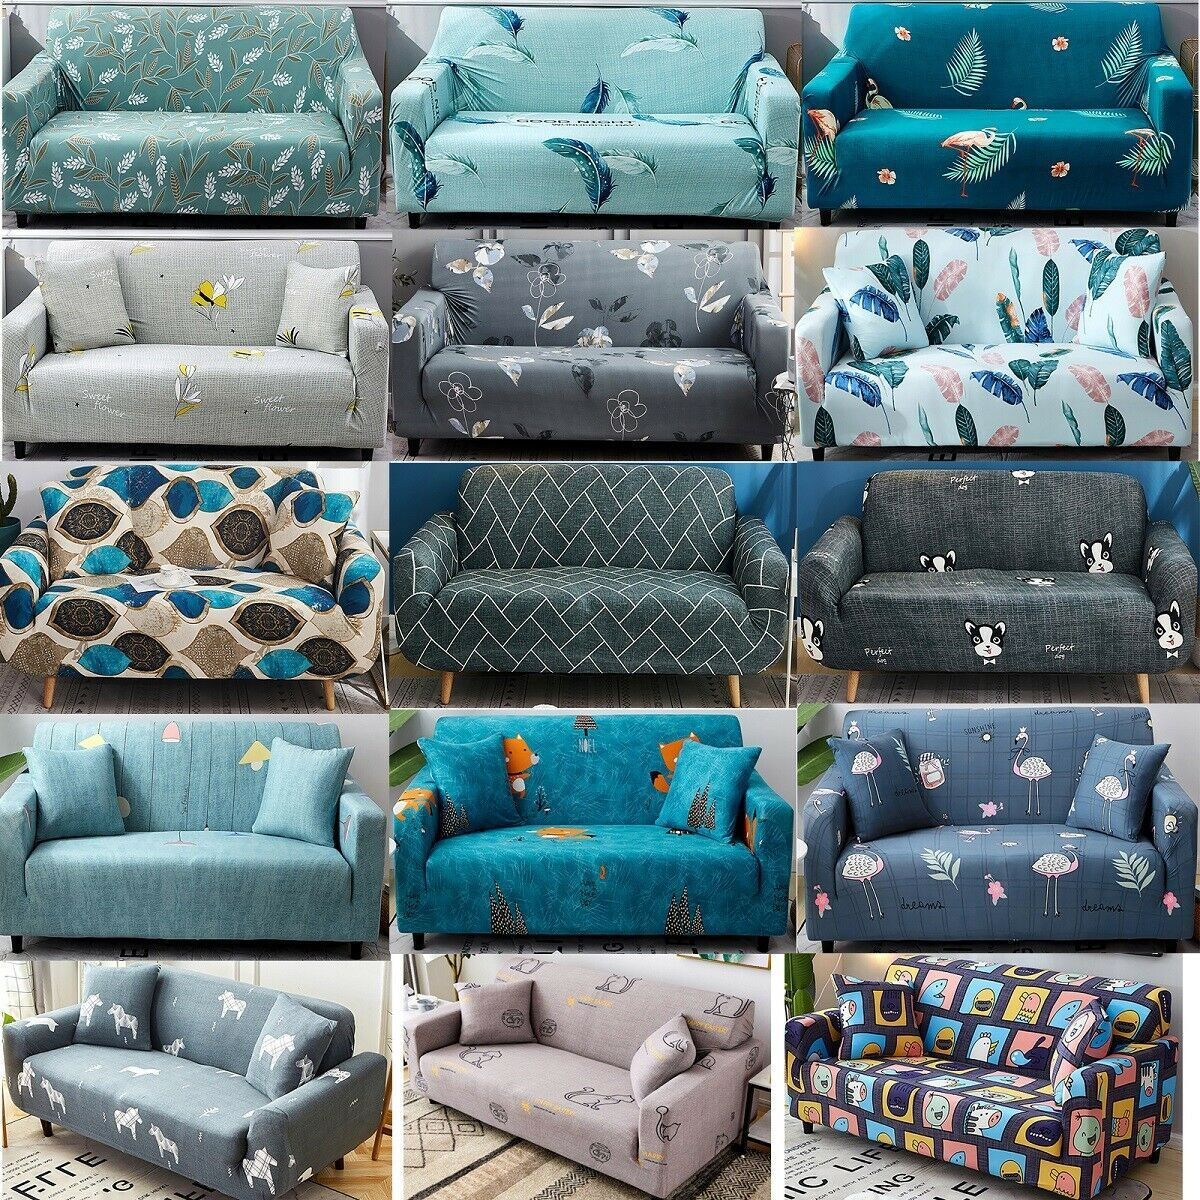 1234 Seater Elastic Stretch Sofa Cover Couch Cover Slipcovers Recliner Protector Kitchen Sofa Kitchensofa In 2020 Couch Covers Slipcovers Sofa Covers Couch Covers